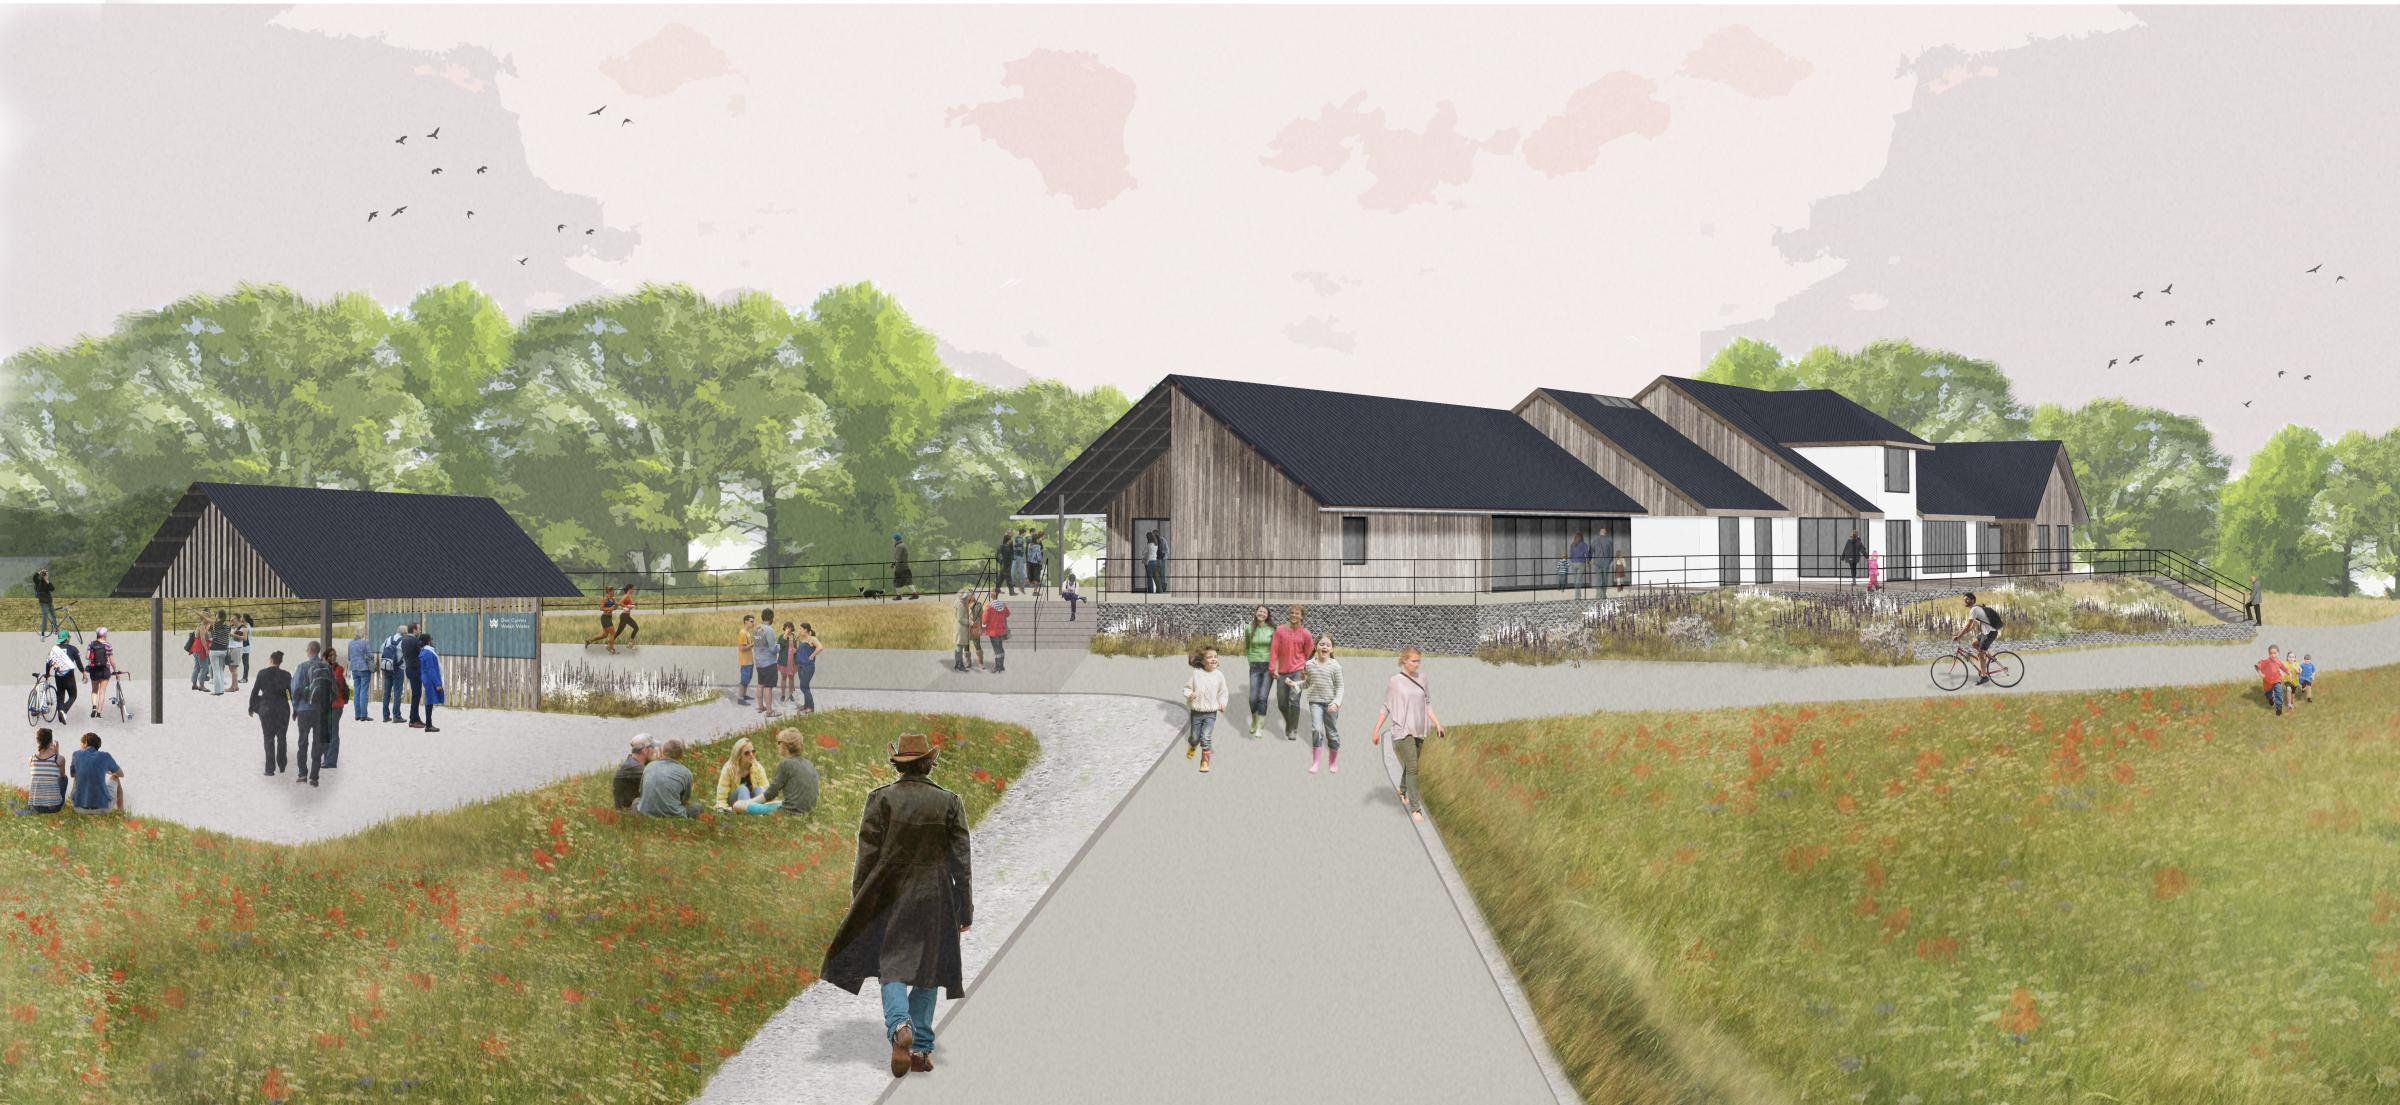 New contractors start work on Llys-y-Fran redevelopment